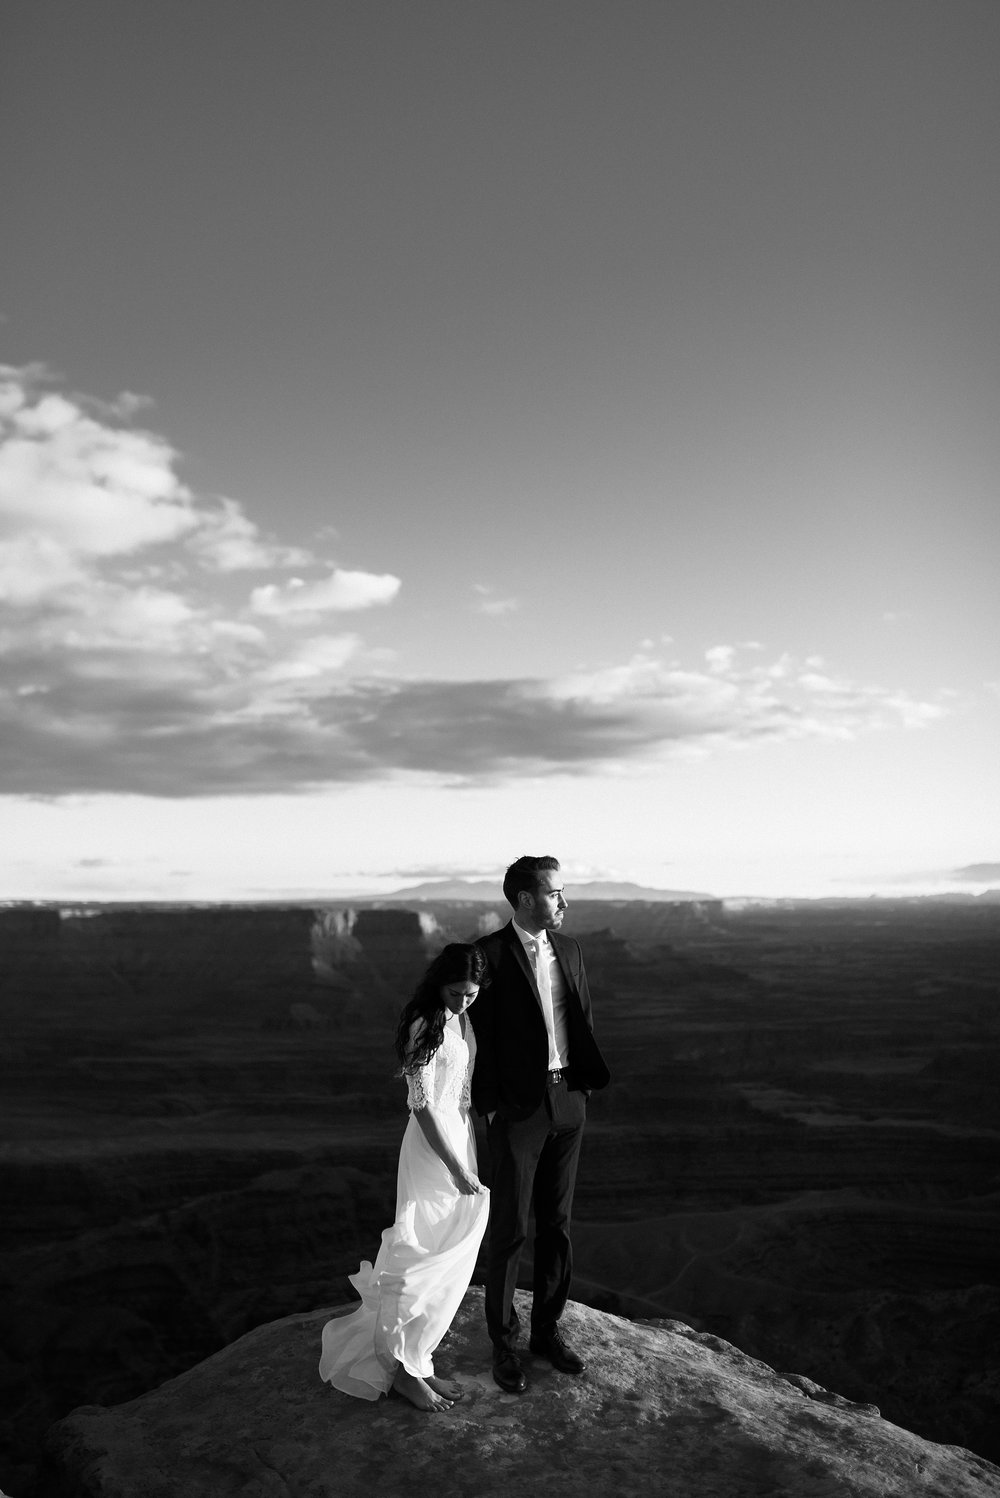 Eden Strader Photography at Dead Horse Point